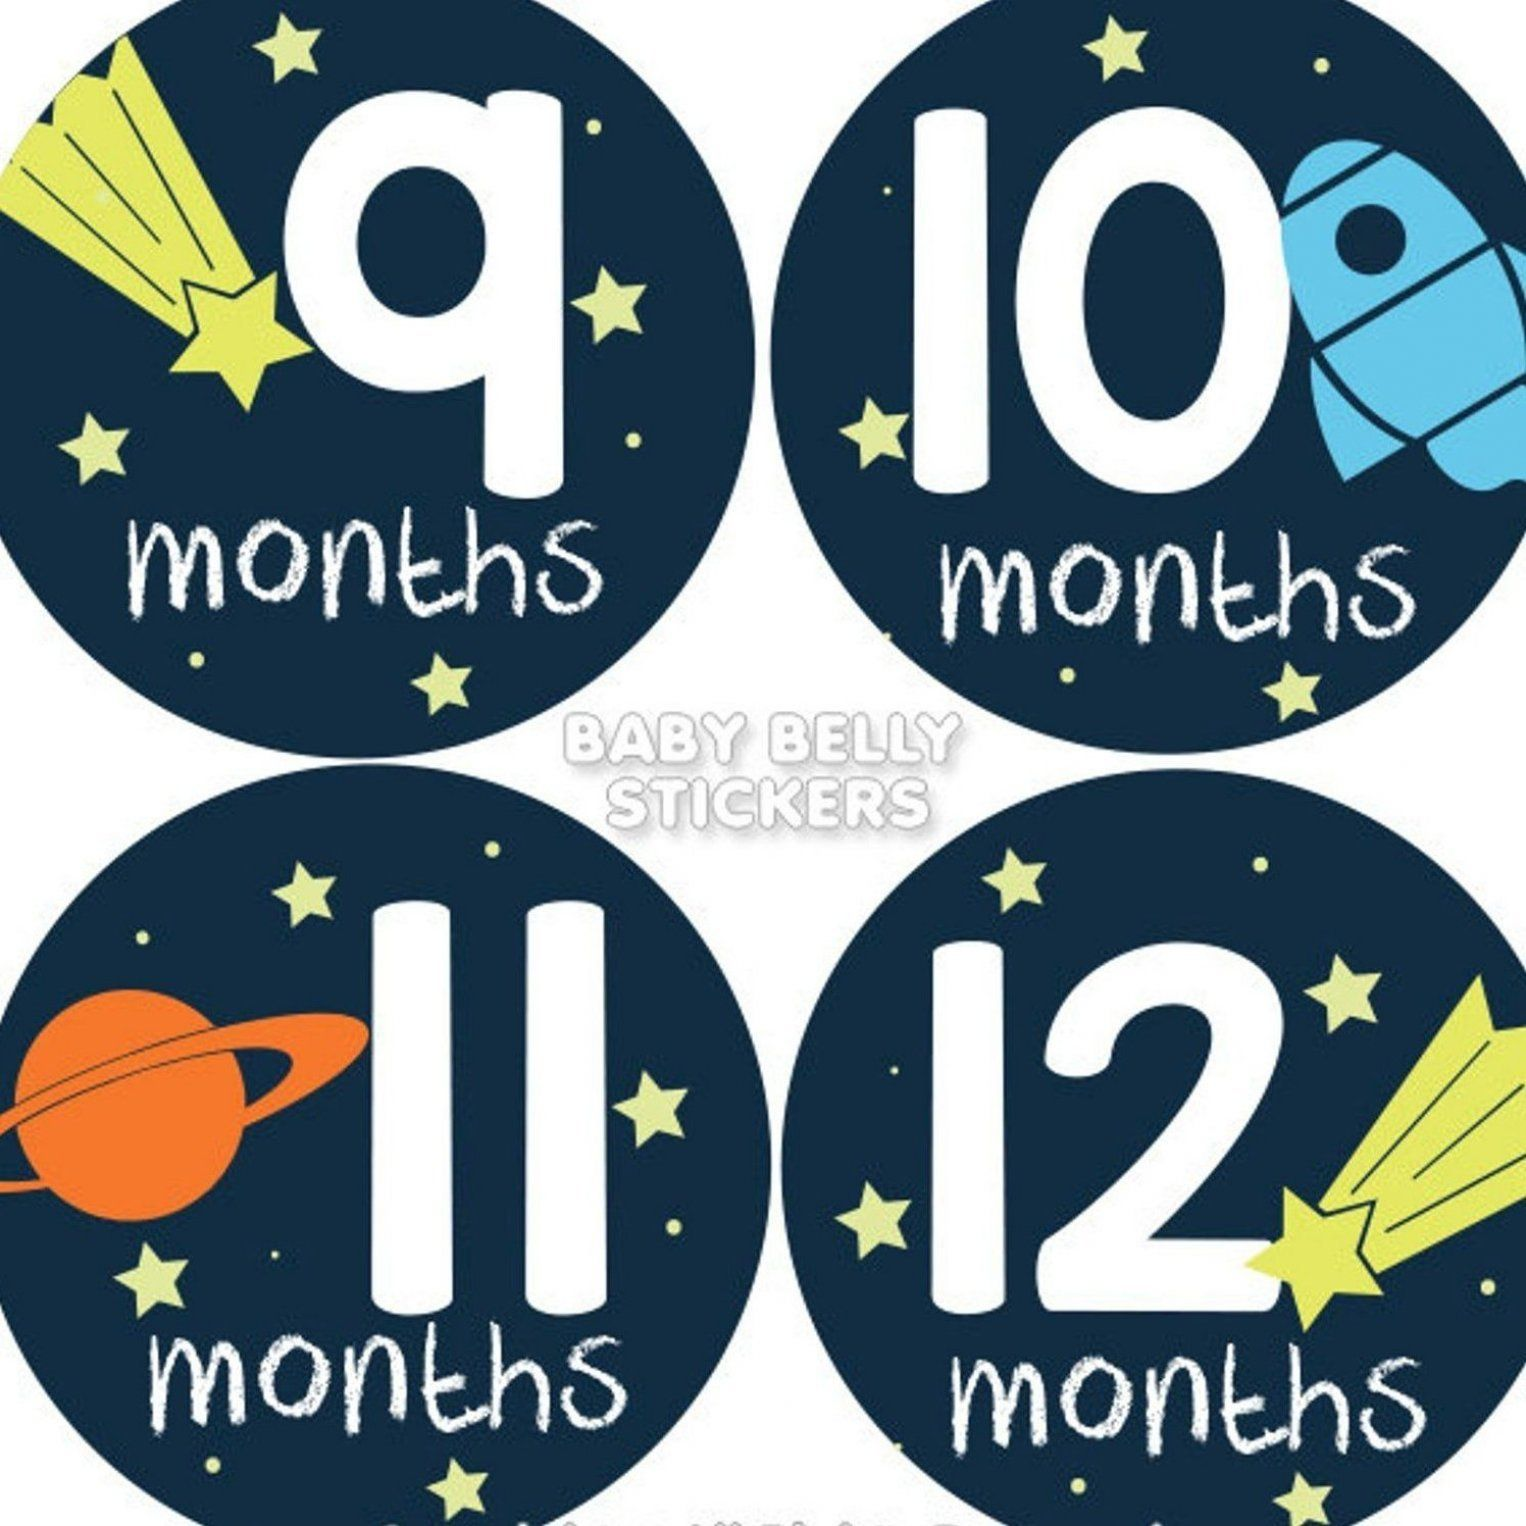 Baby Month Stickers Monthly Baby Stickers Bodysuit Stickers Etsy In 2020 Baby Month Stickers Month Stickers Baby Month By Month